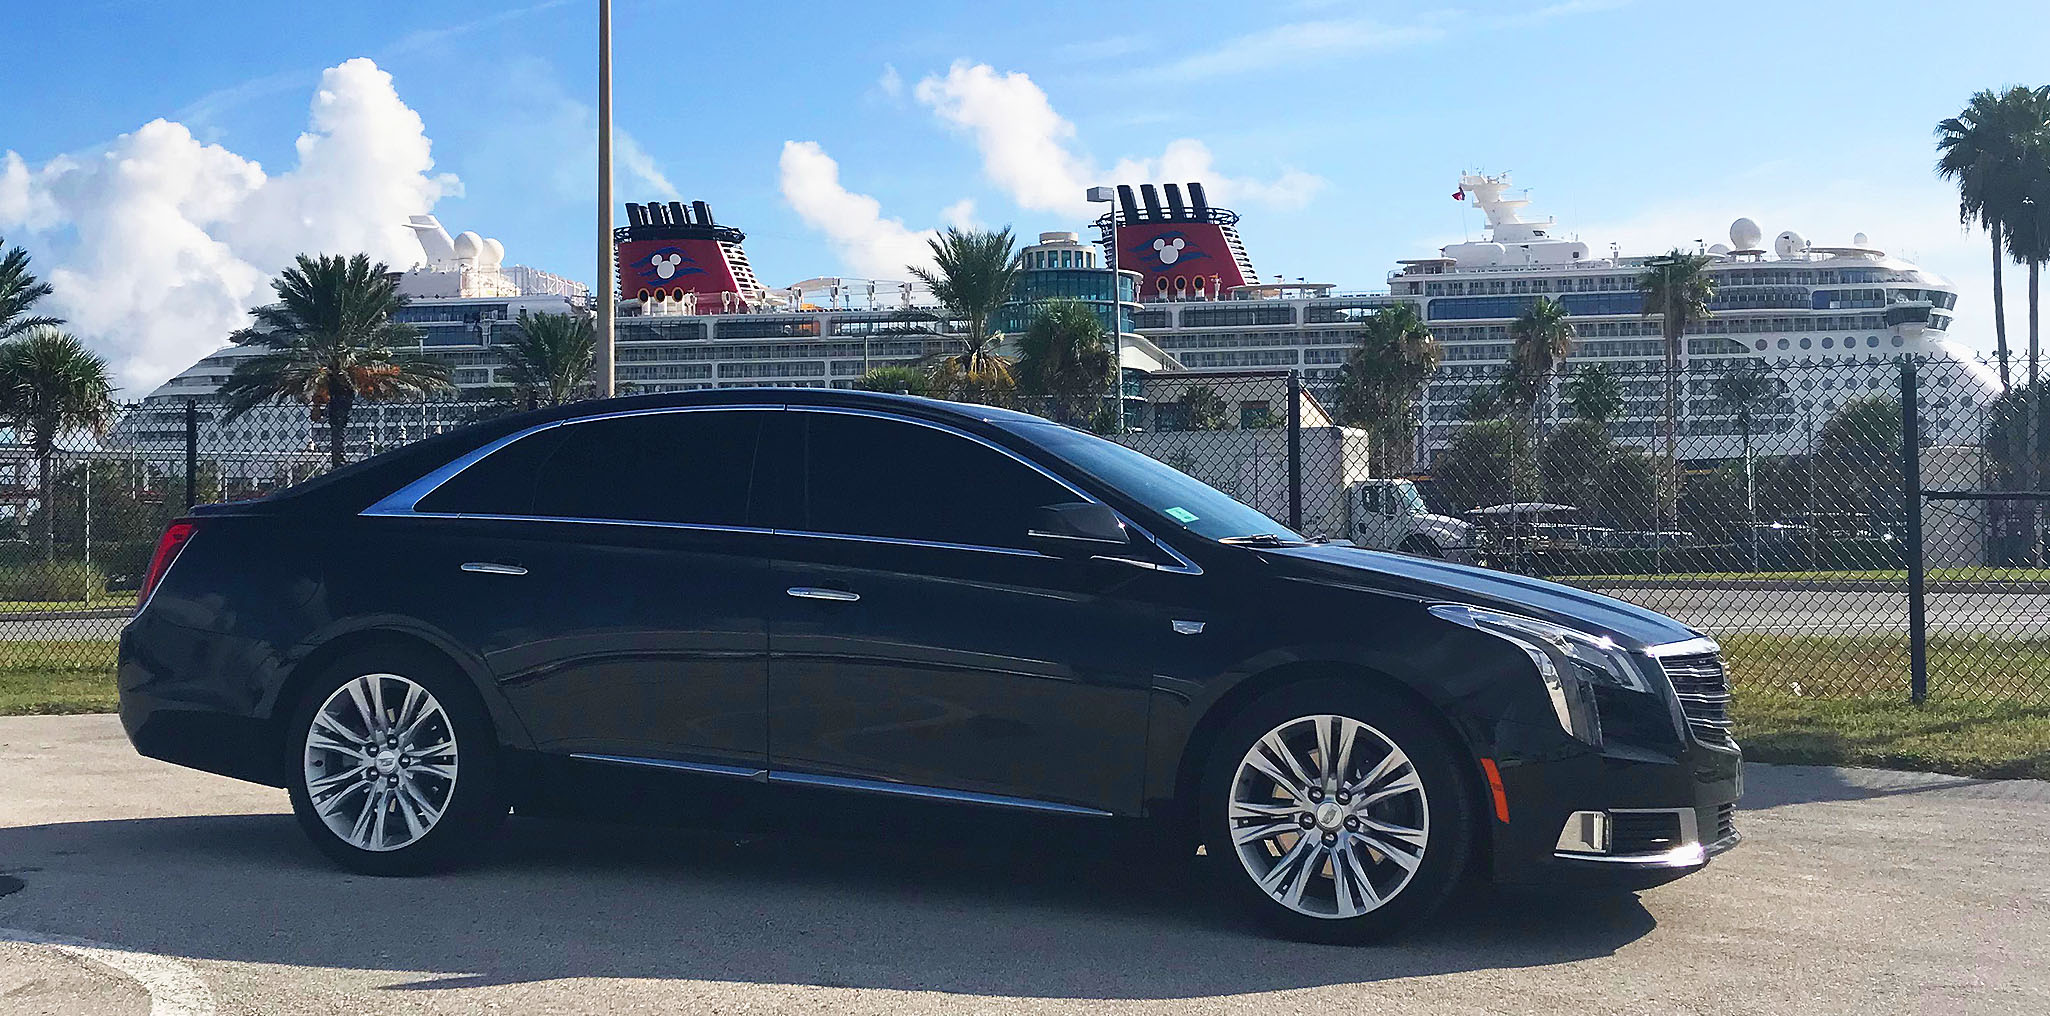 Luxury Sedan to Port Canaveral